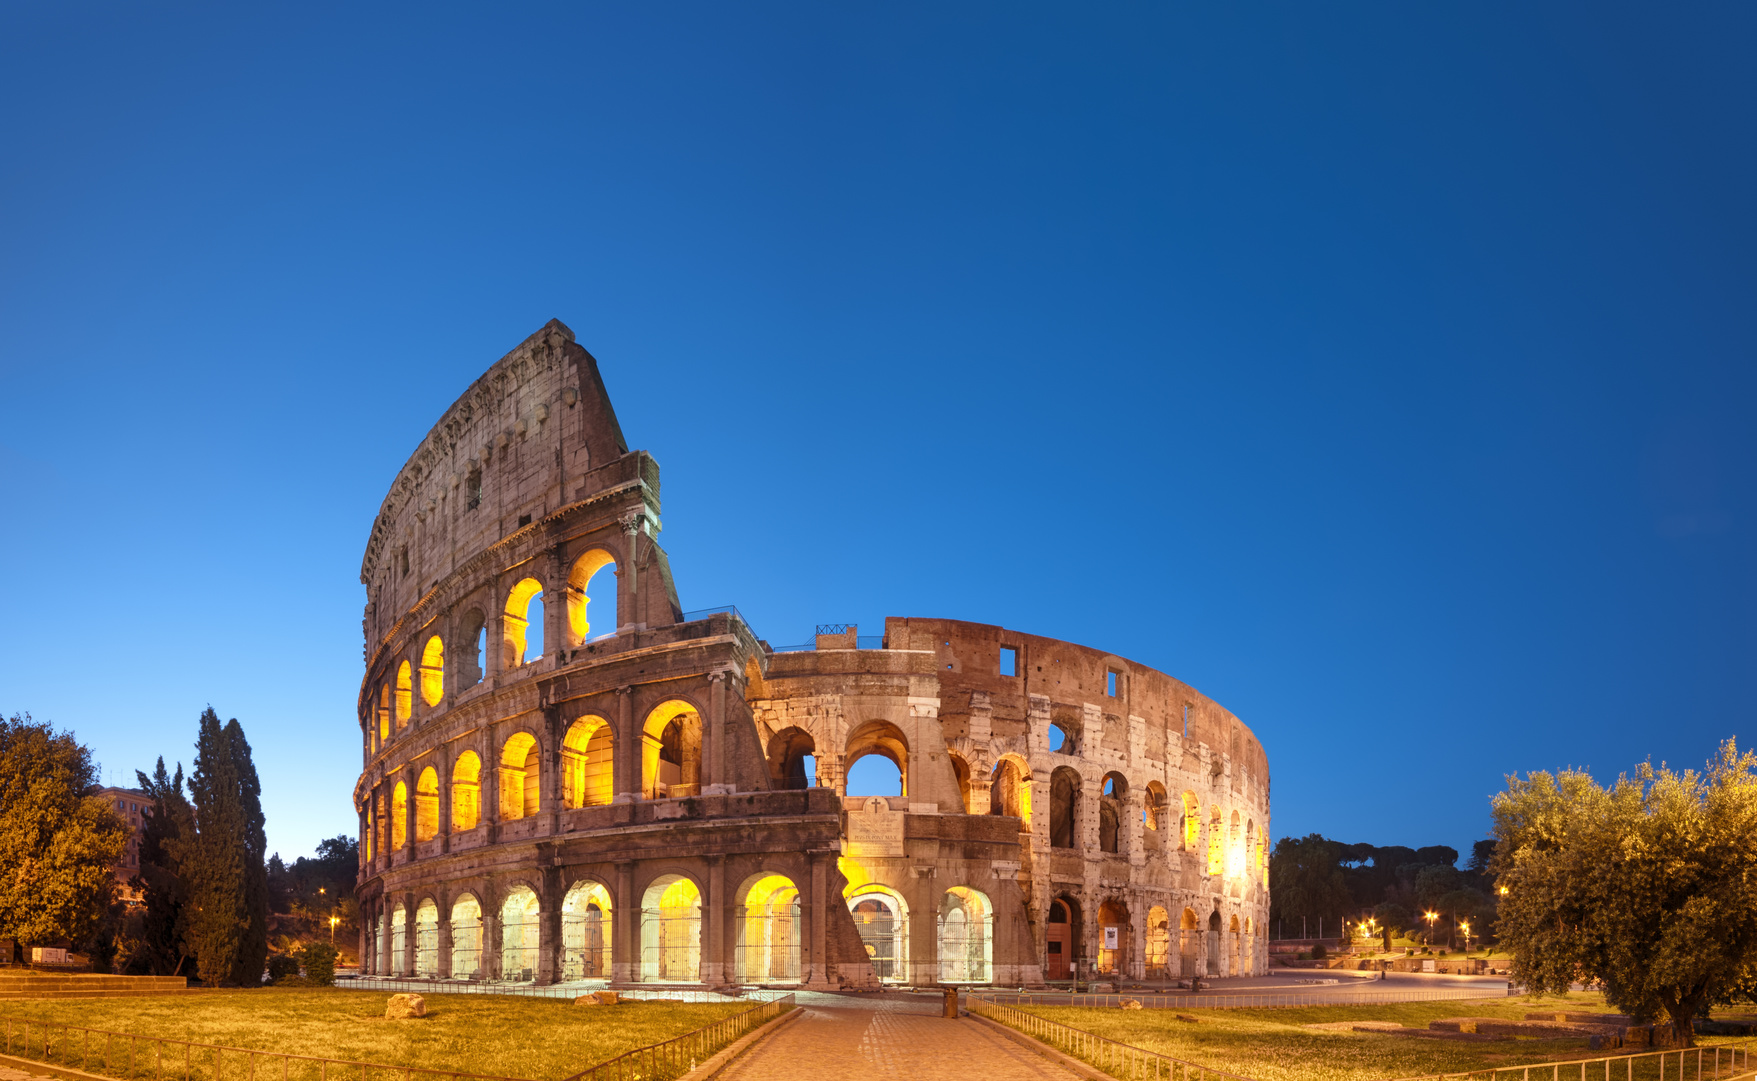 Colosseum at night .Rome - Italy